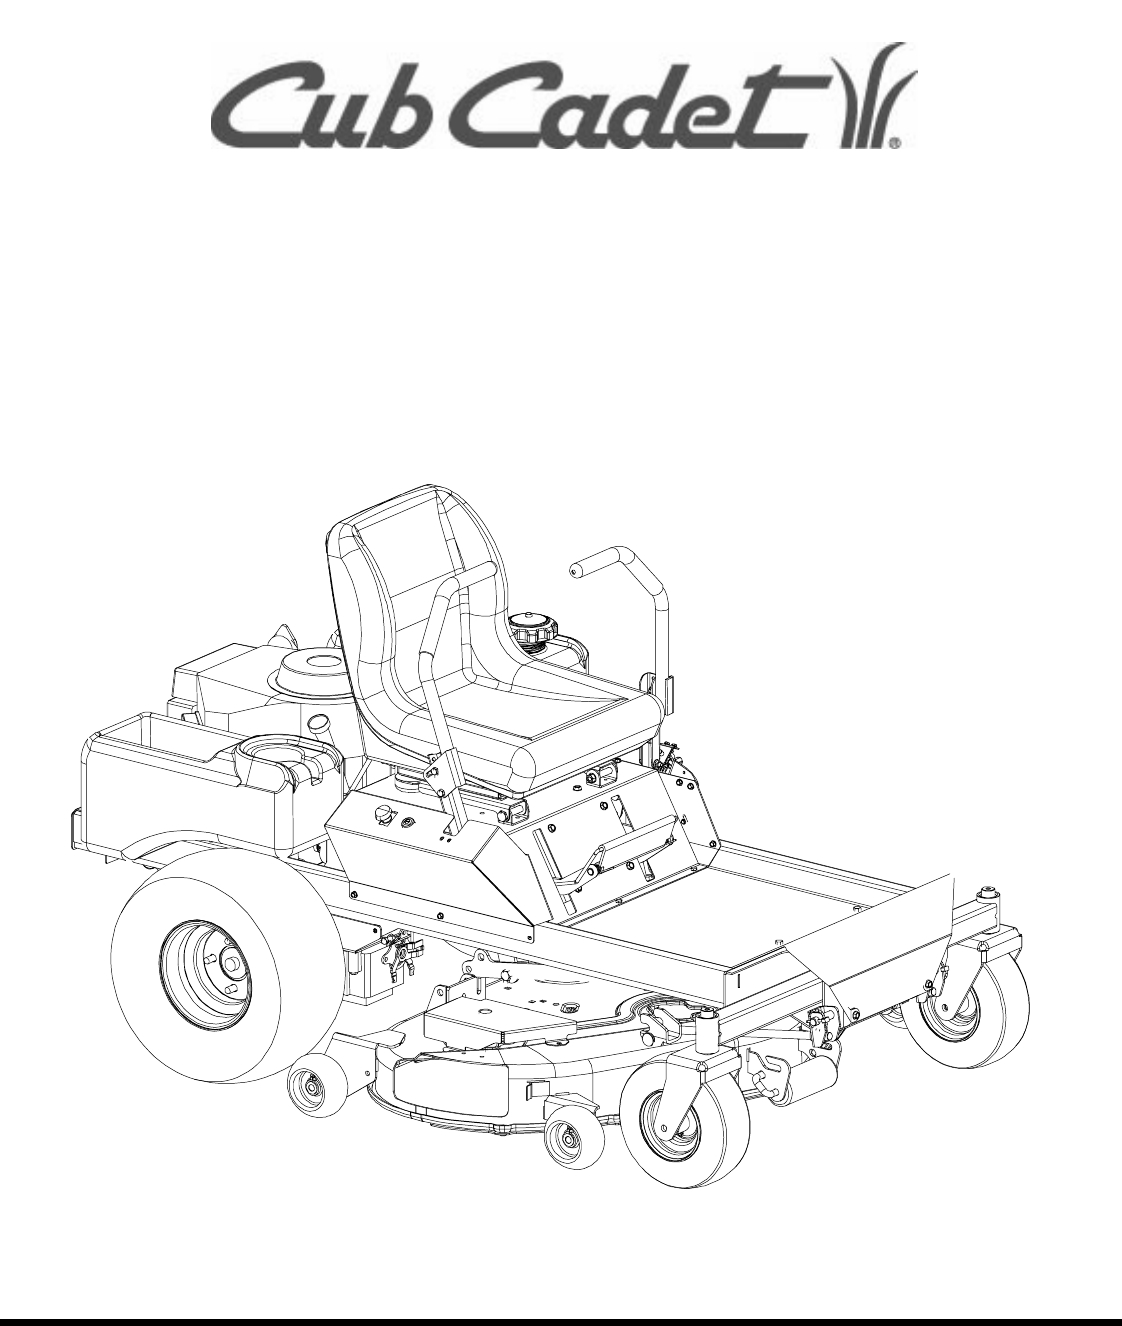 Cub Cadet Lawn Mower 20Hp Z-Force 44 User Guide | Manualsonline regarding Cub Cadet Zero Turn Parts Diagram